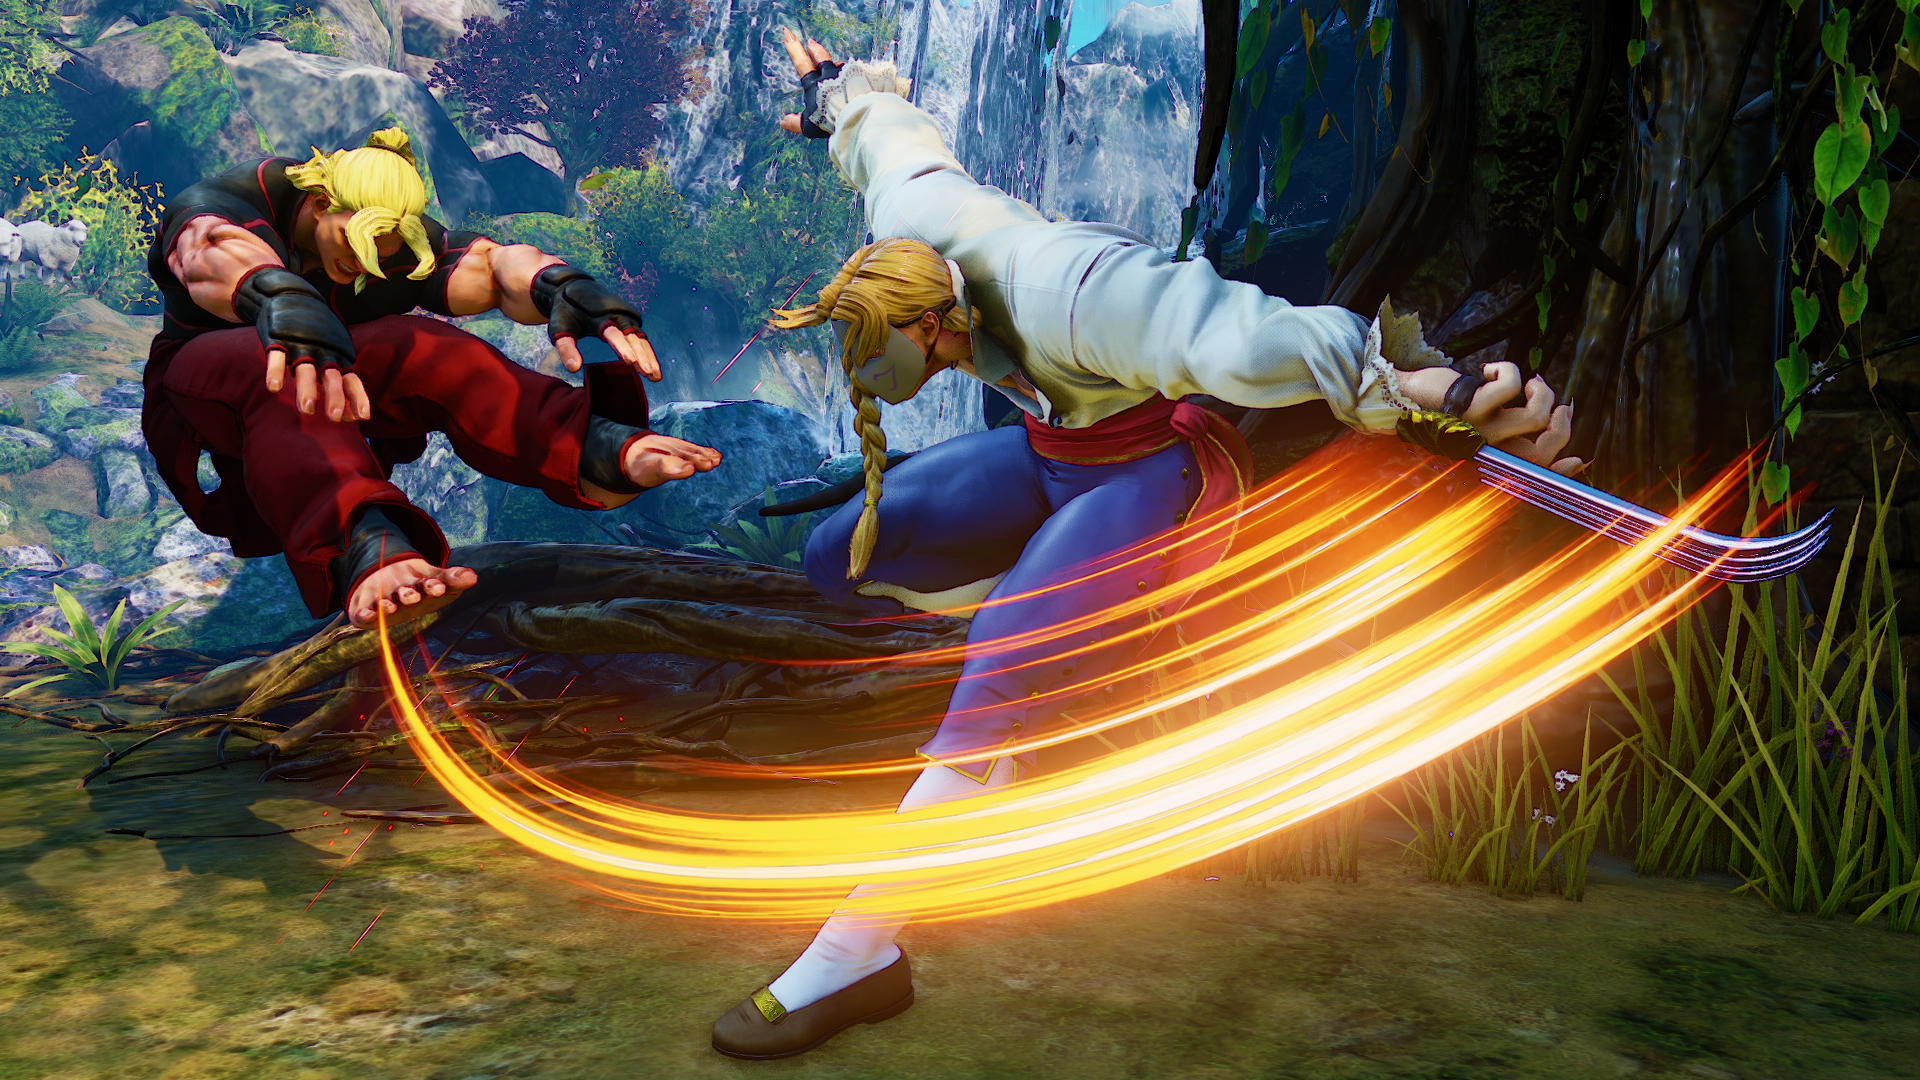 Claw Attacks Wall Dives Take Center Stage As Vega Joins Street